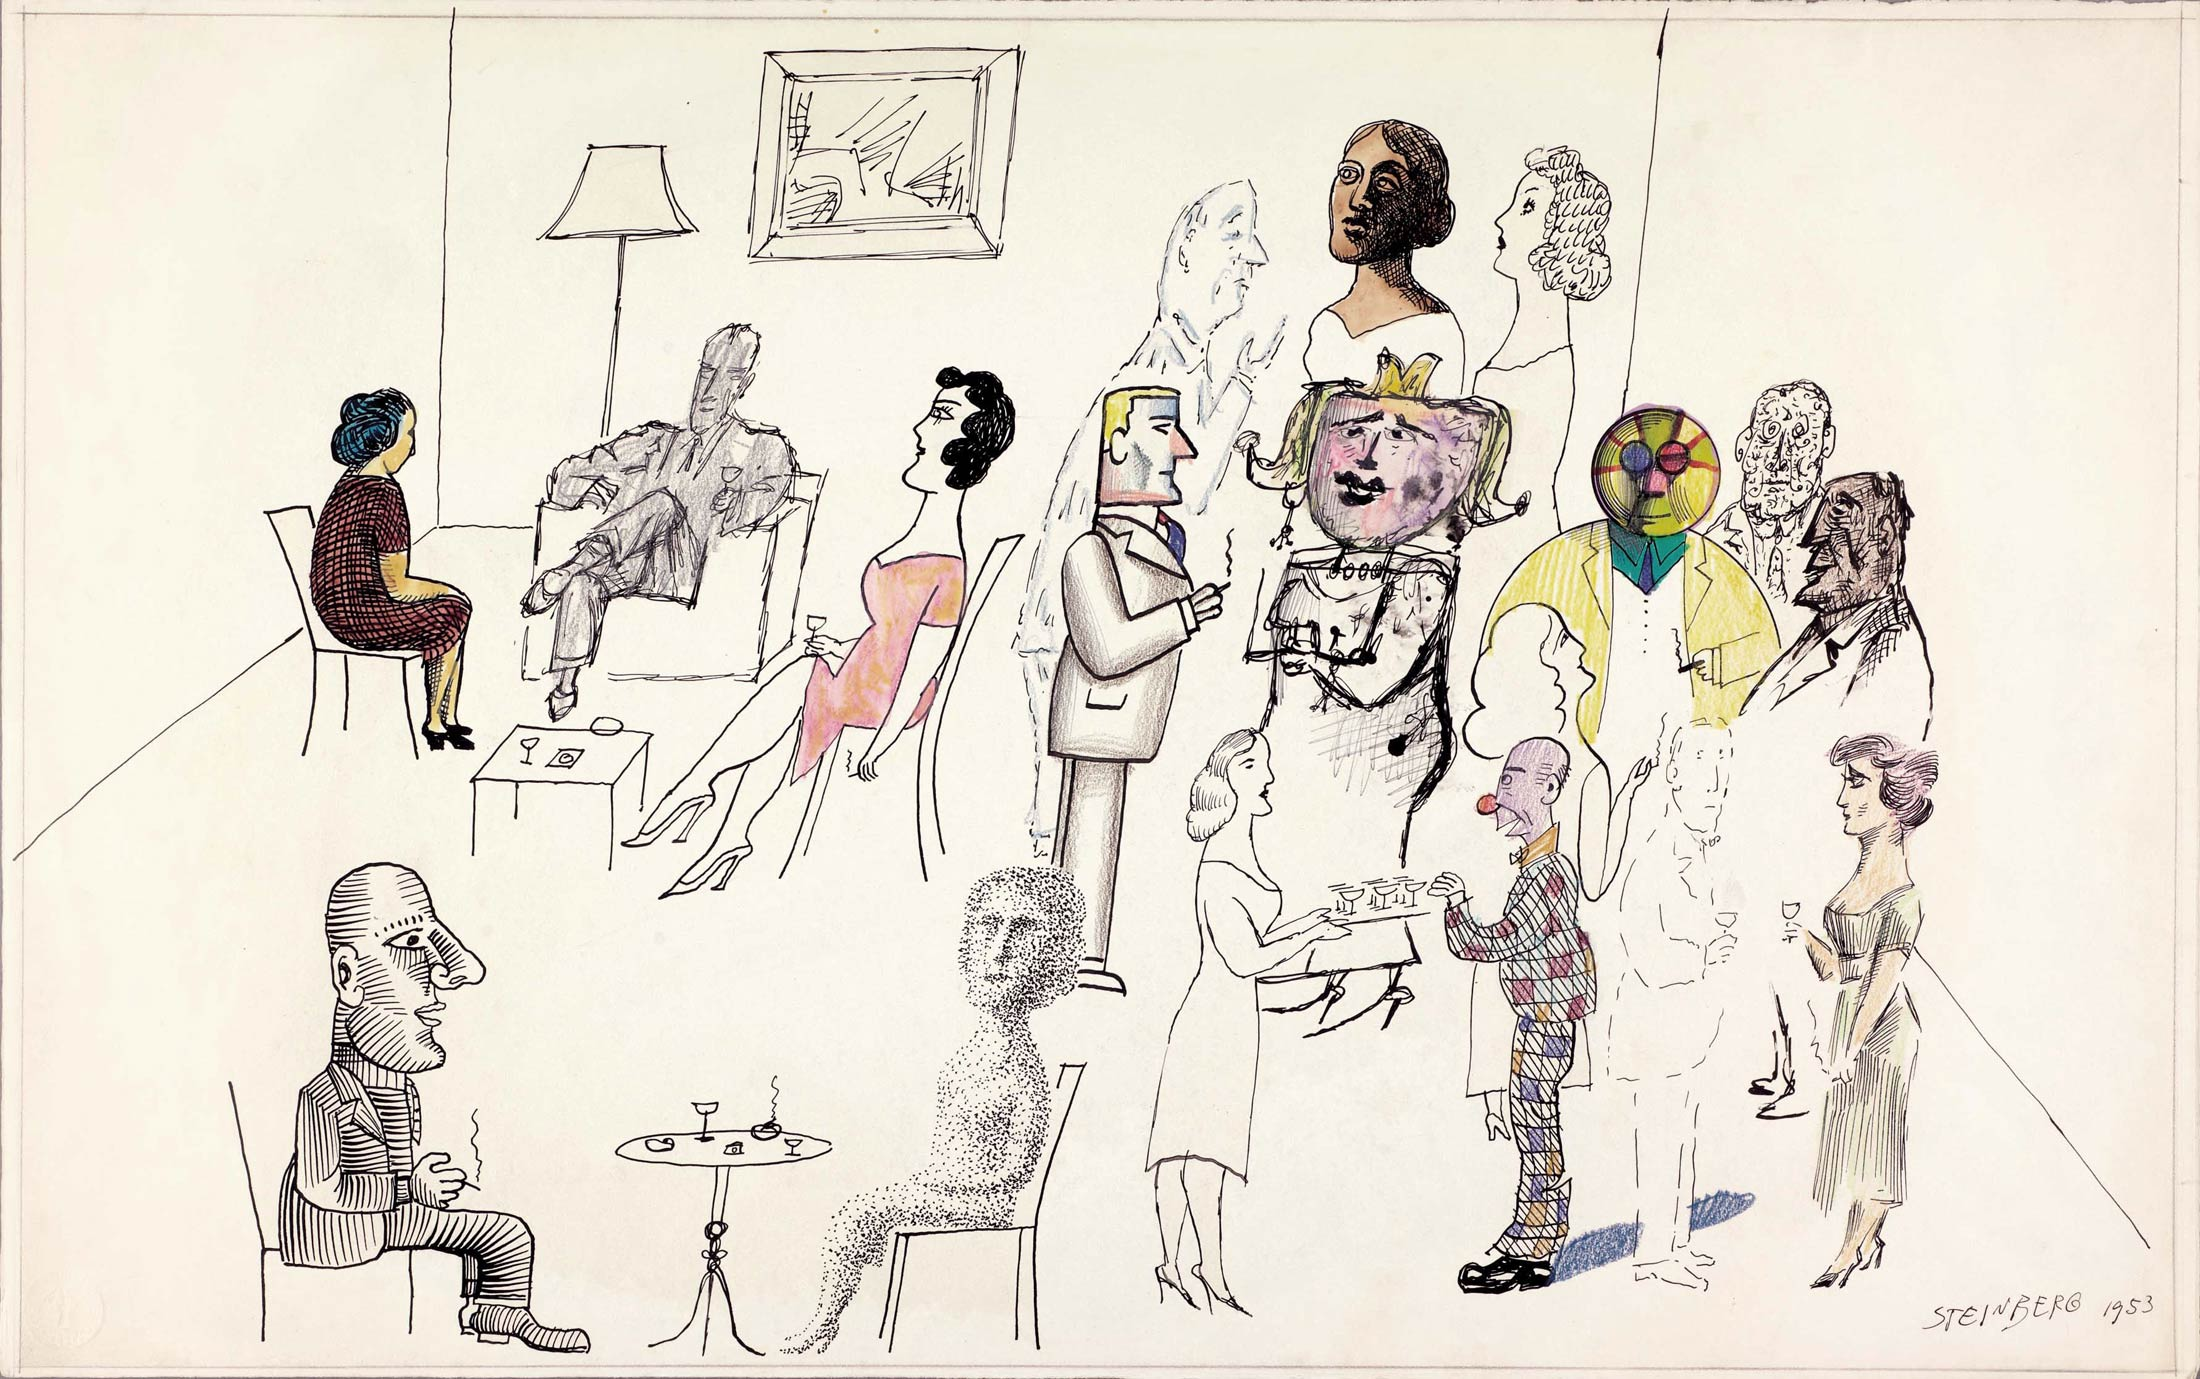 <em>Techniques at a Party I</em>, 1953. Ink, watercolor, pencil, and crayon on paper, 14 ½ x 23 in. The Morgan Library & Museum, New York; Gift of The Saul Steinberg Foundation.